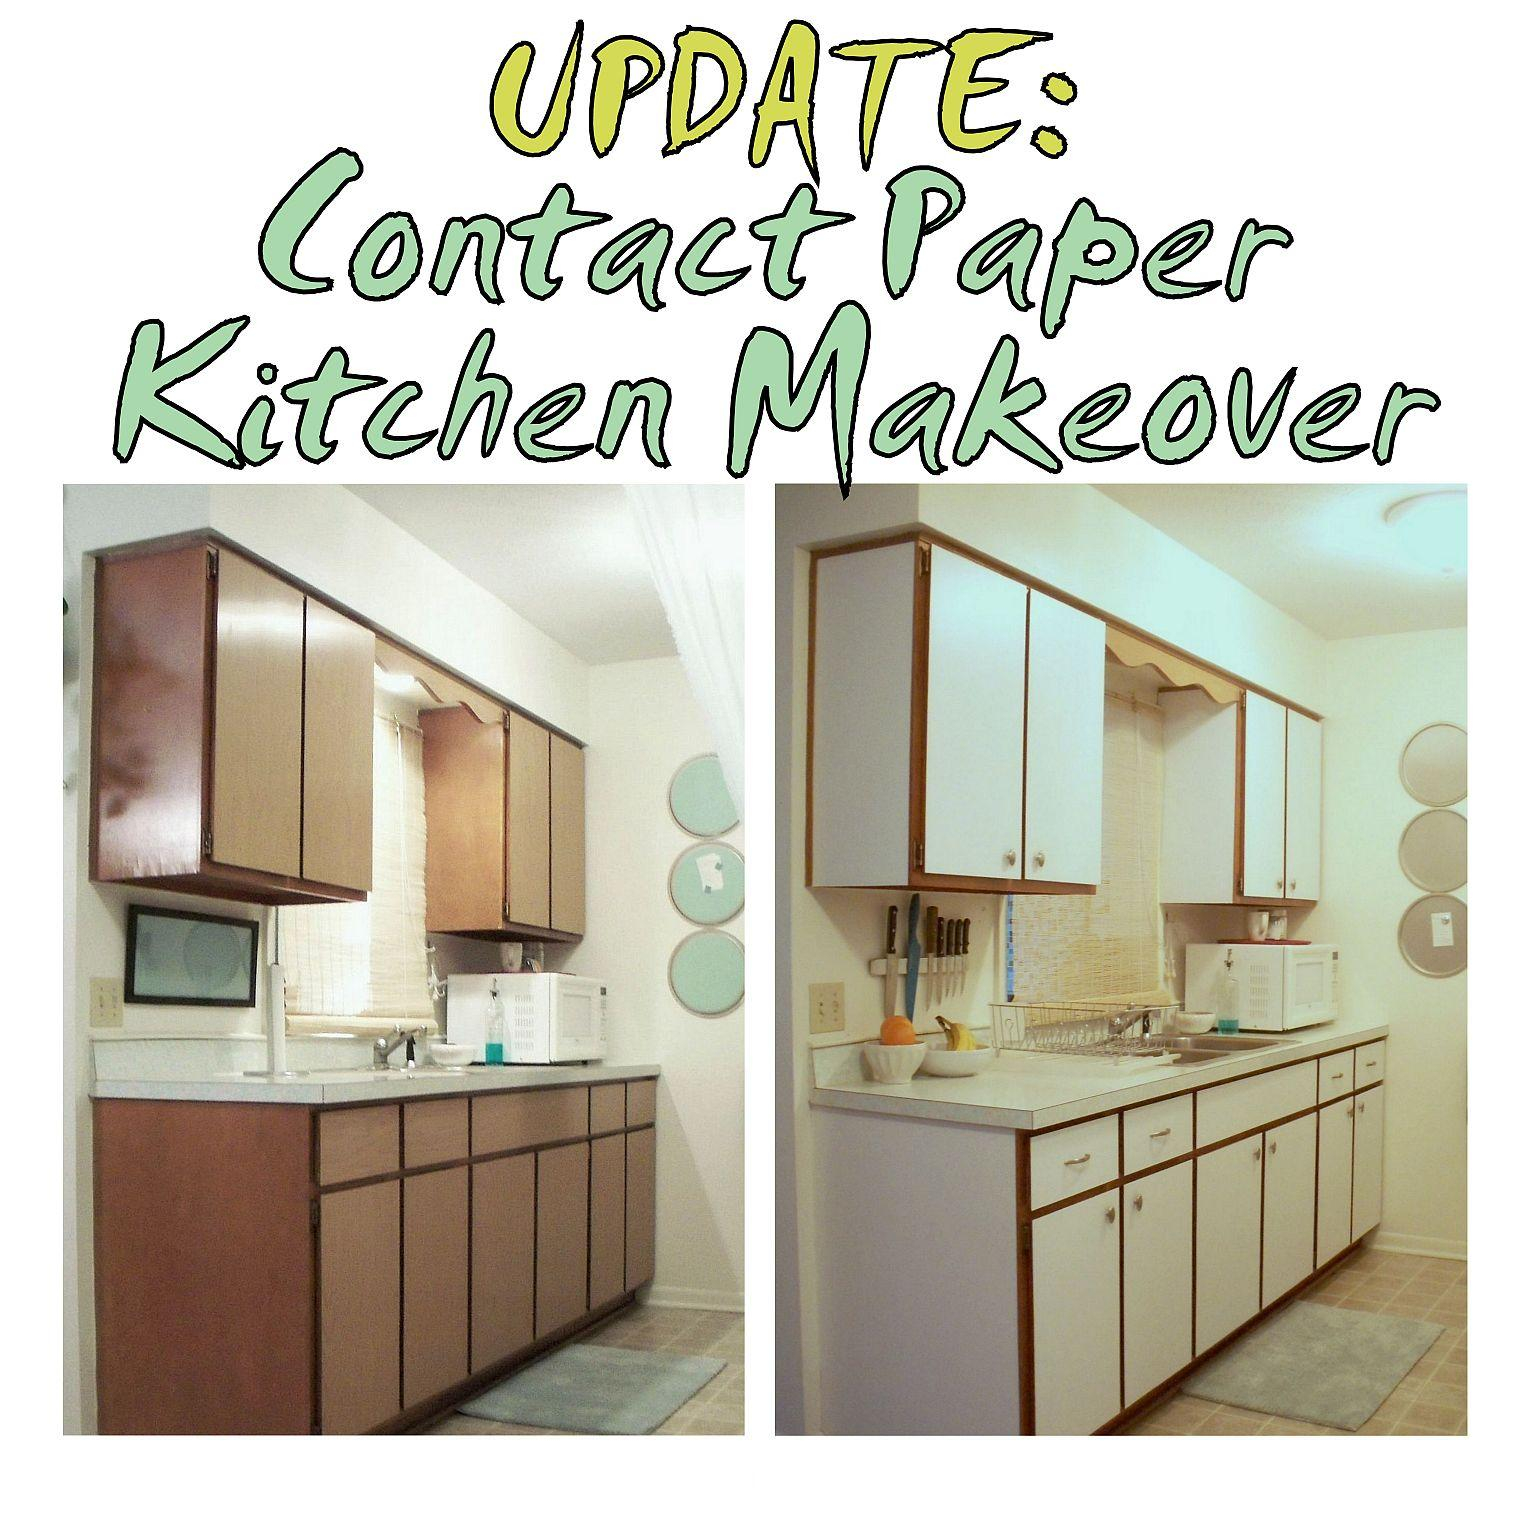 Fancy Update: Contact Paper Kitchen Makeover – The Decor Guru intended for Lovely Rental Kitchen Makeover